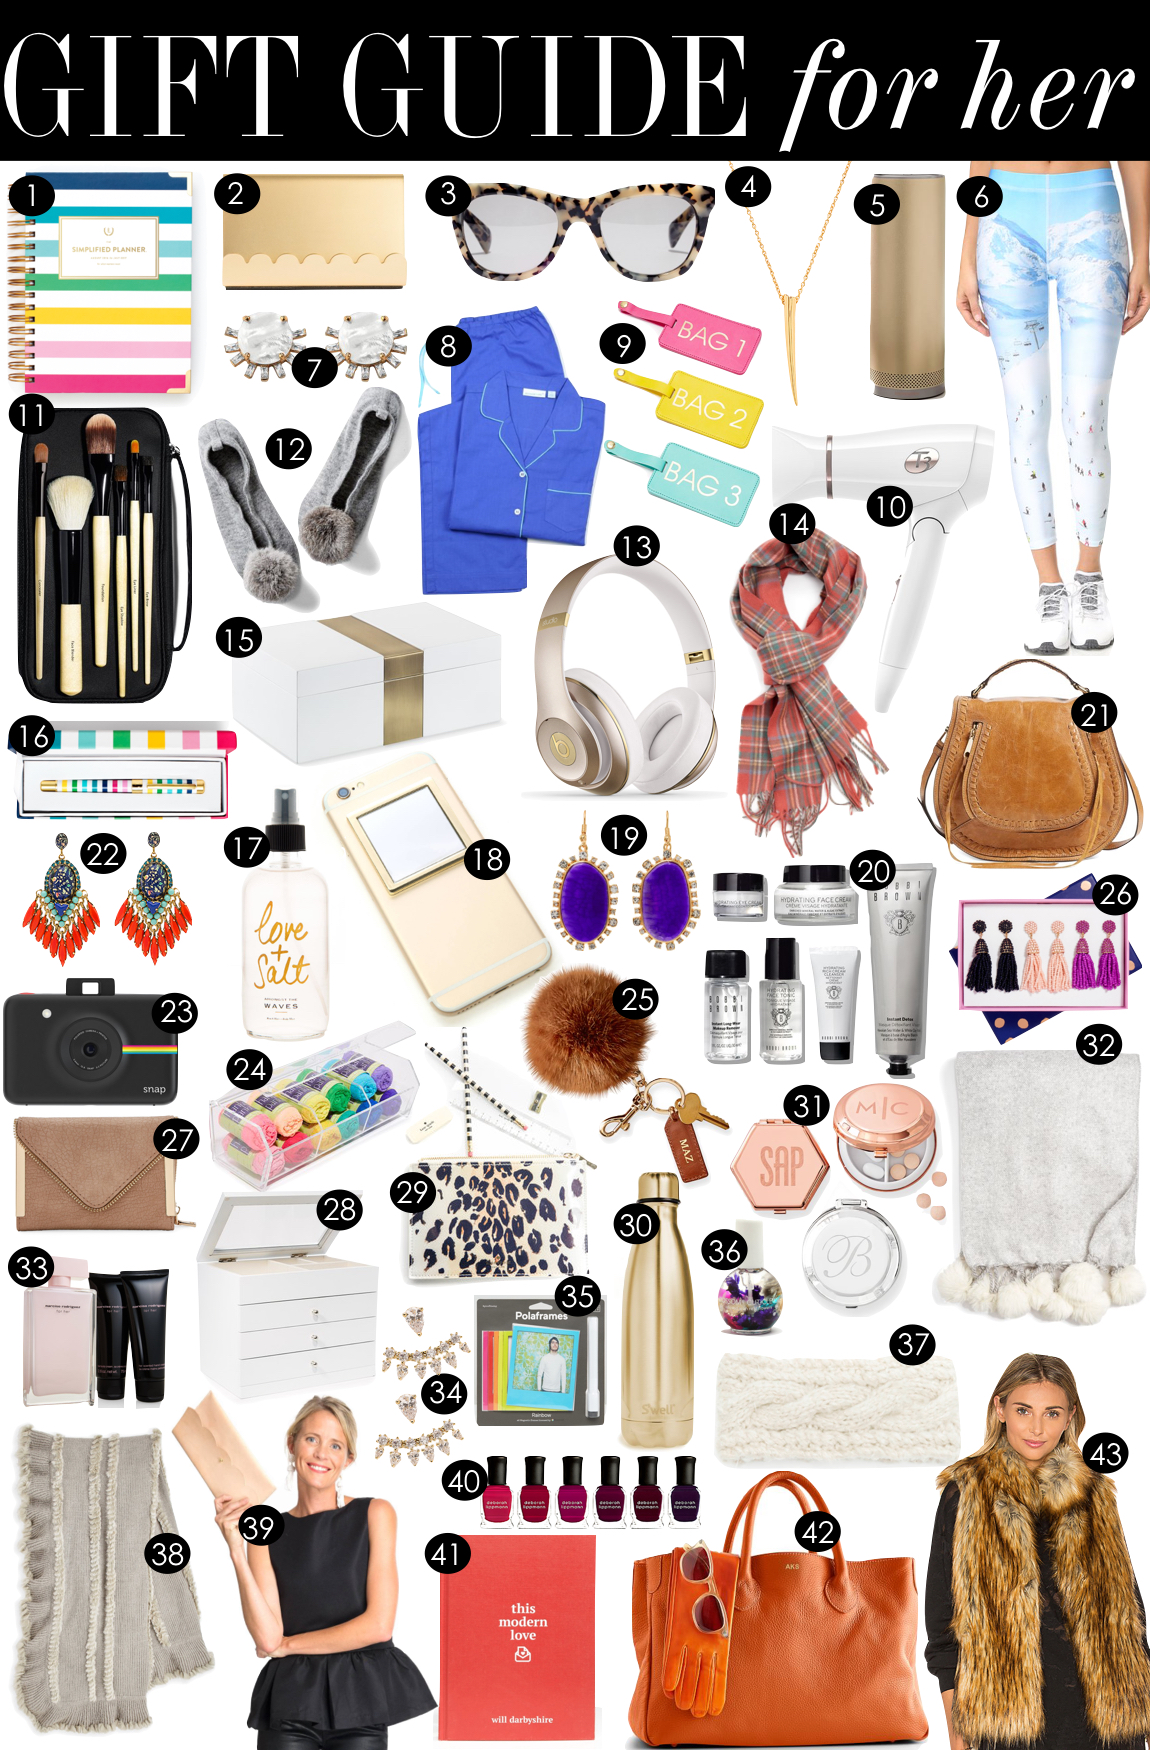 Gift Guide for Her  |  Kiki's List